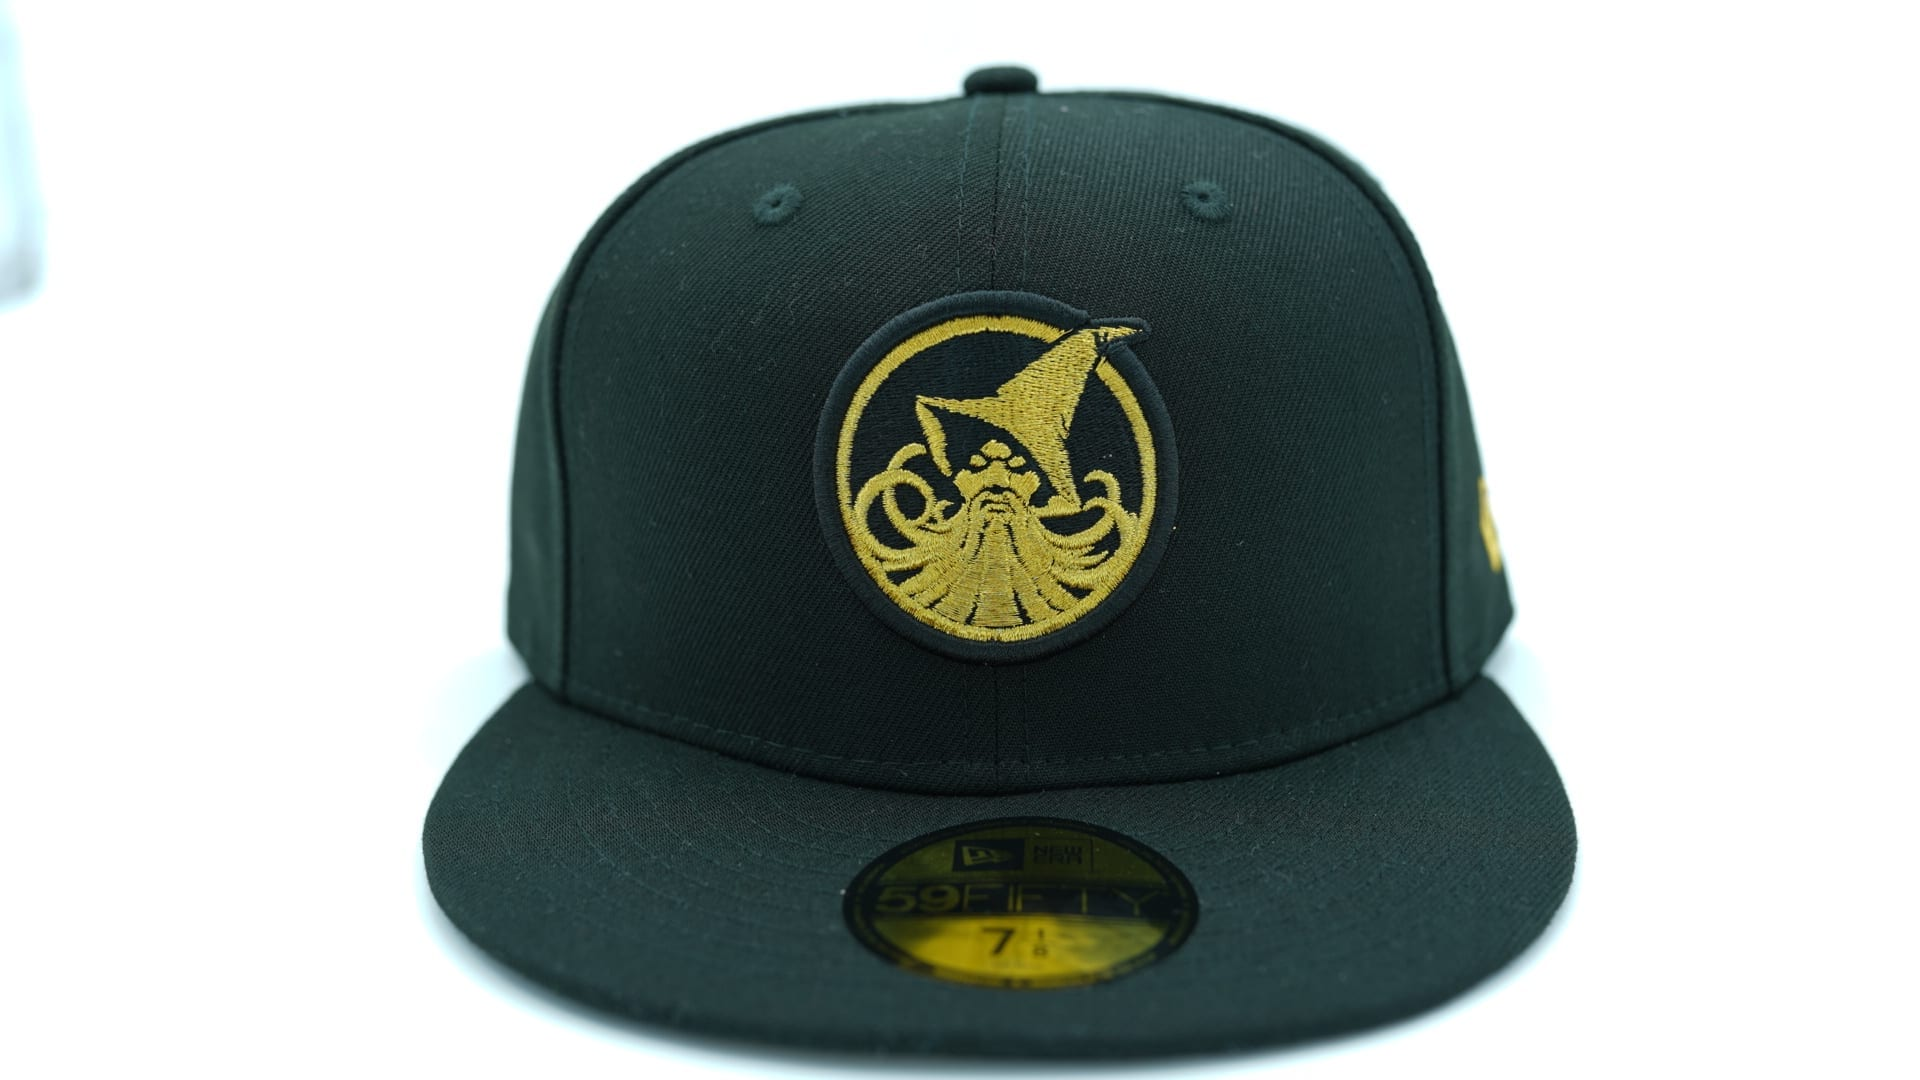 New Orleans Pelicans 2-Tone Team Tan/Red 59Fifty Fitted Cap by NEW ERA x NBA